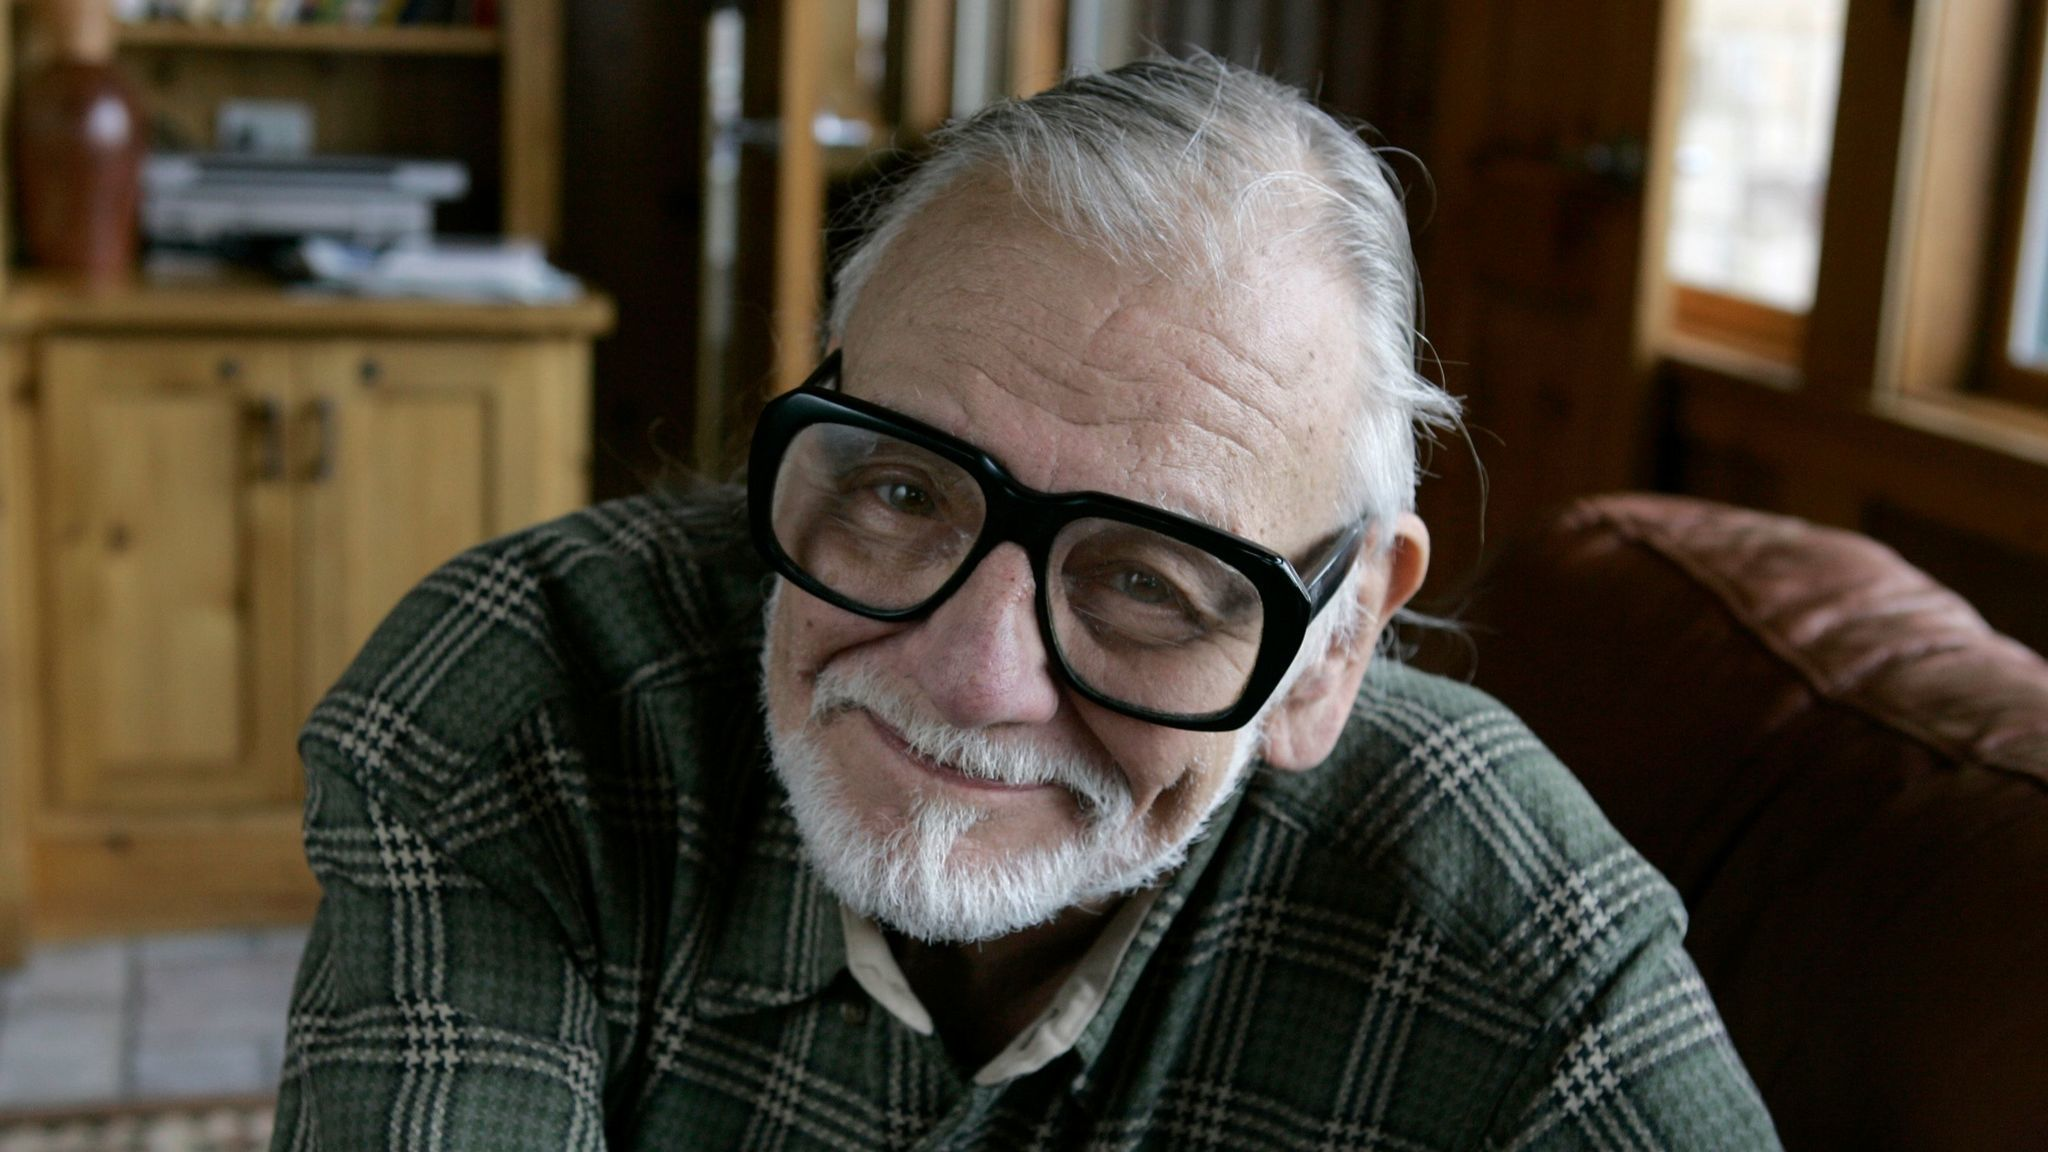 George Romero, godfather of gore, brought zombie cinema to life